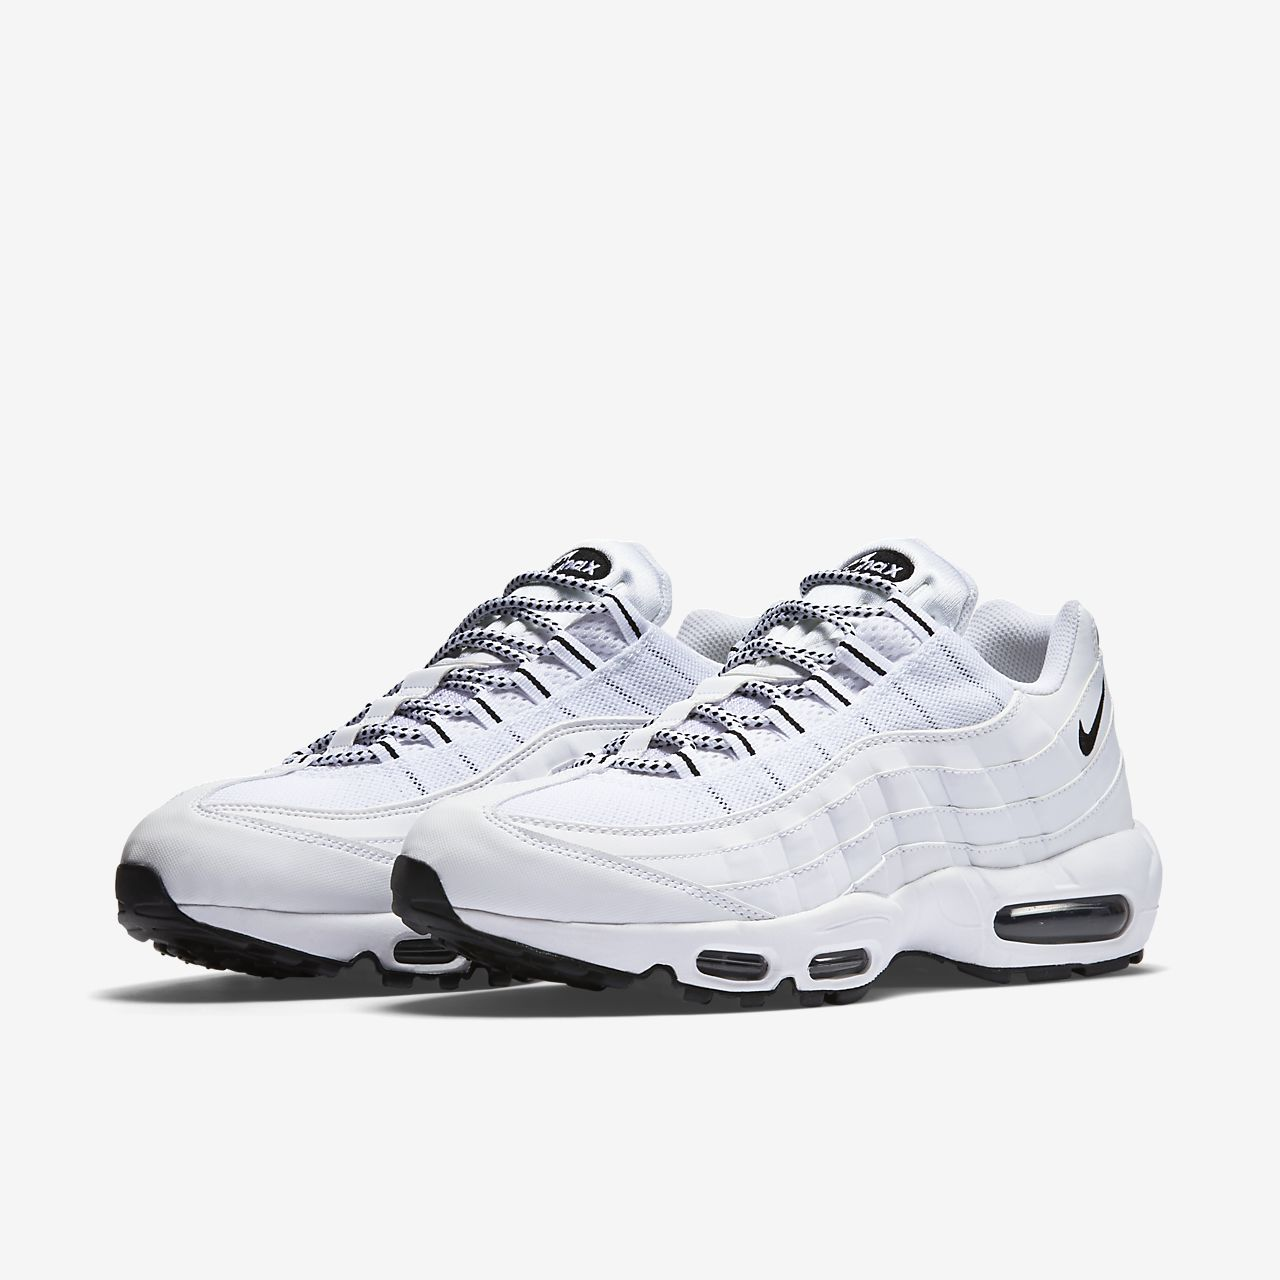 nike air max 95 white and blue nz